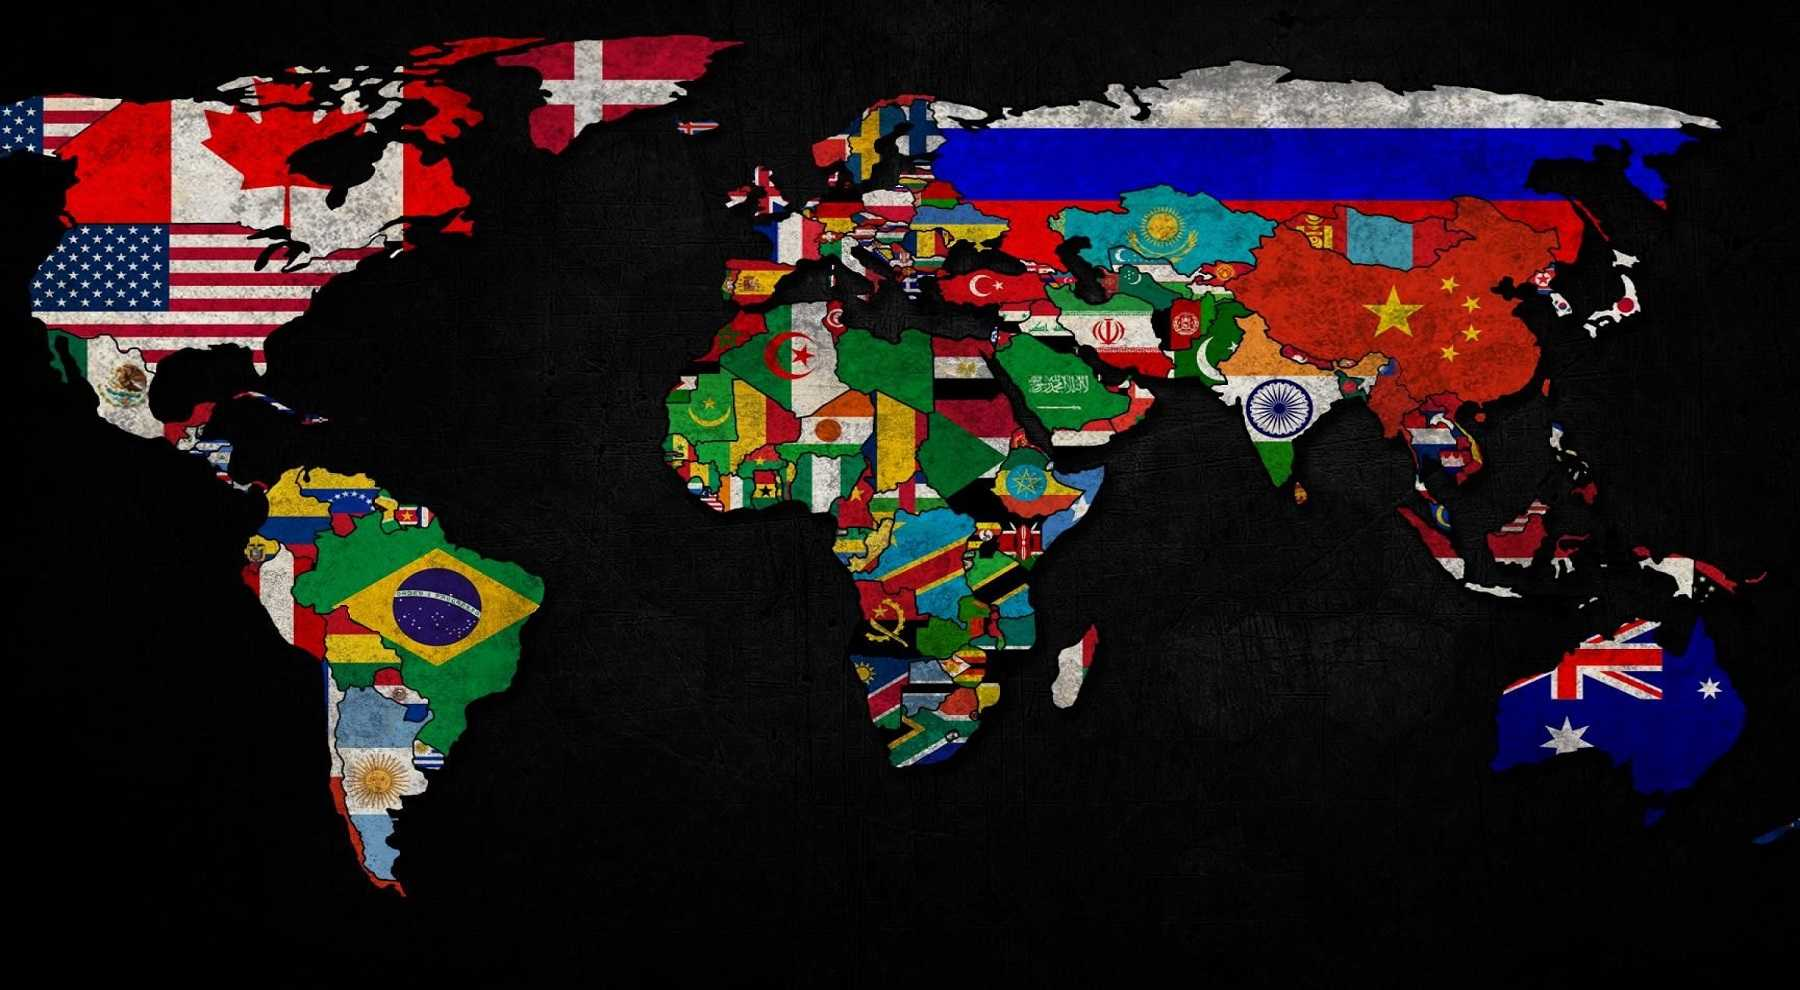 world_flag_map-wide